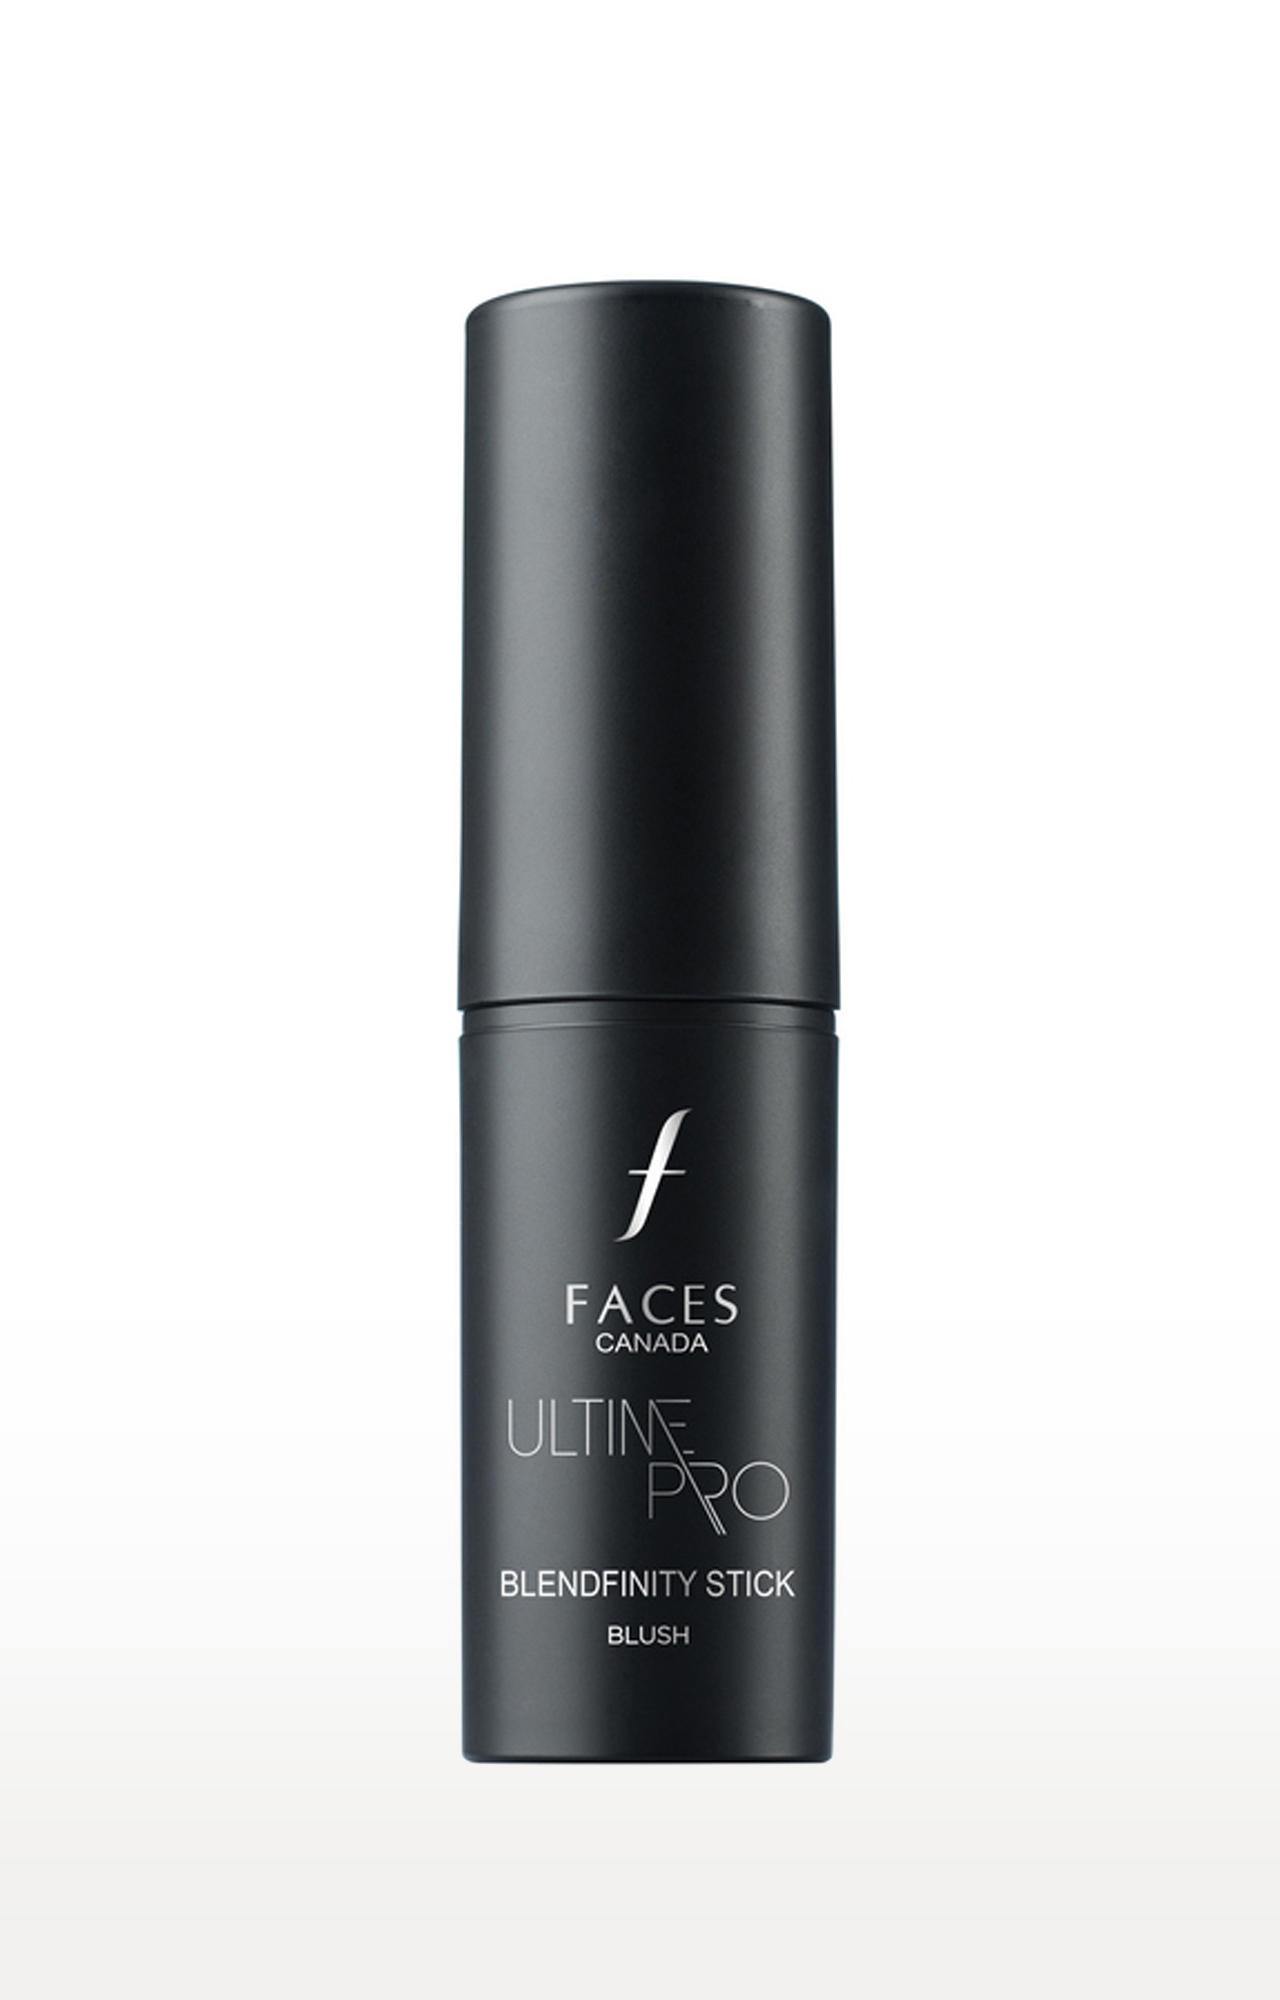 Faces Canada | Ultime Pro Blend Finity Stick Blush - Passionate Pink 02